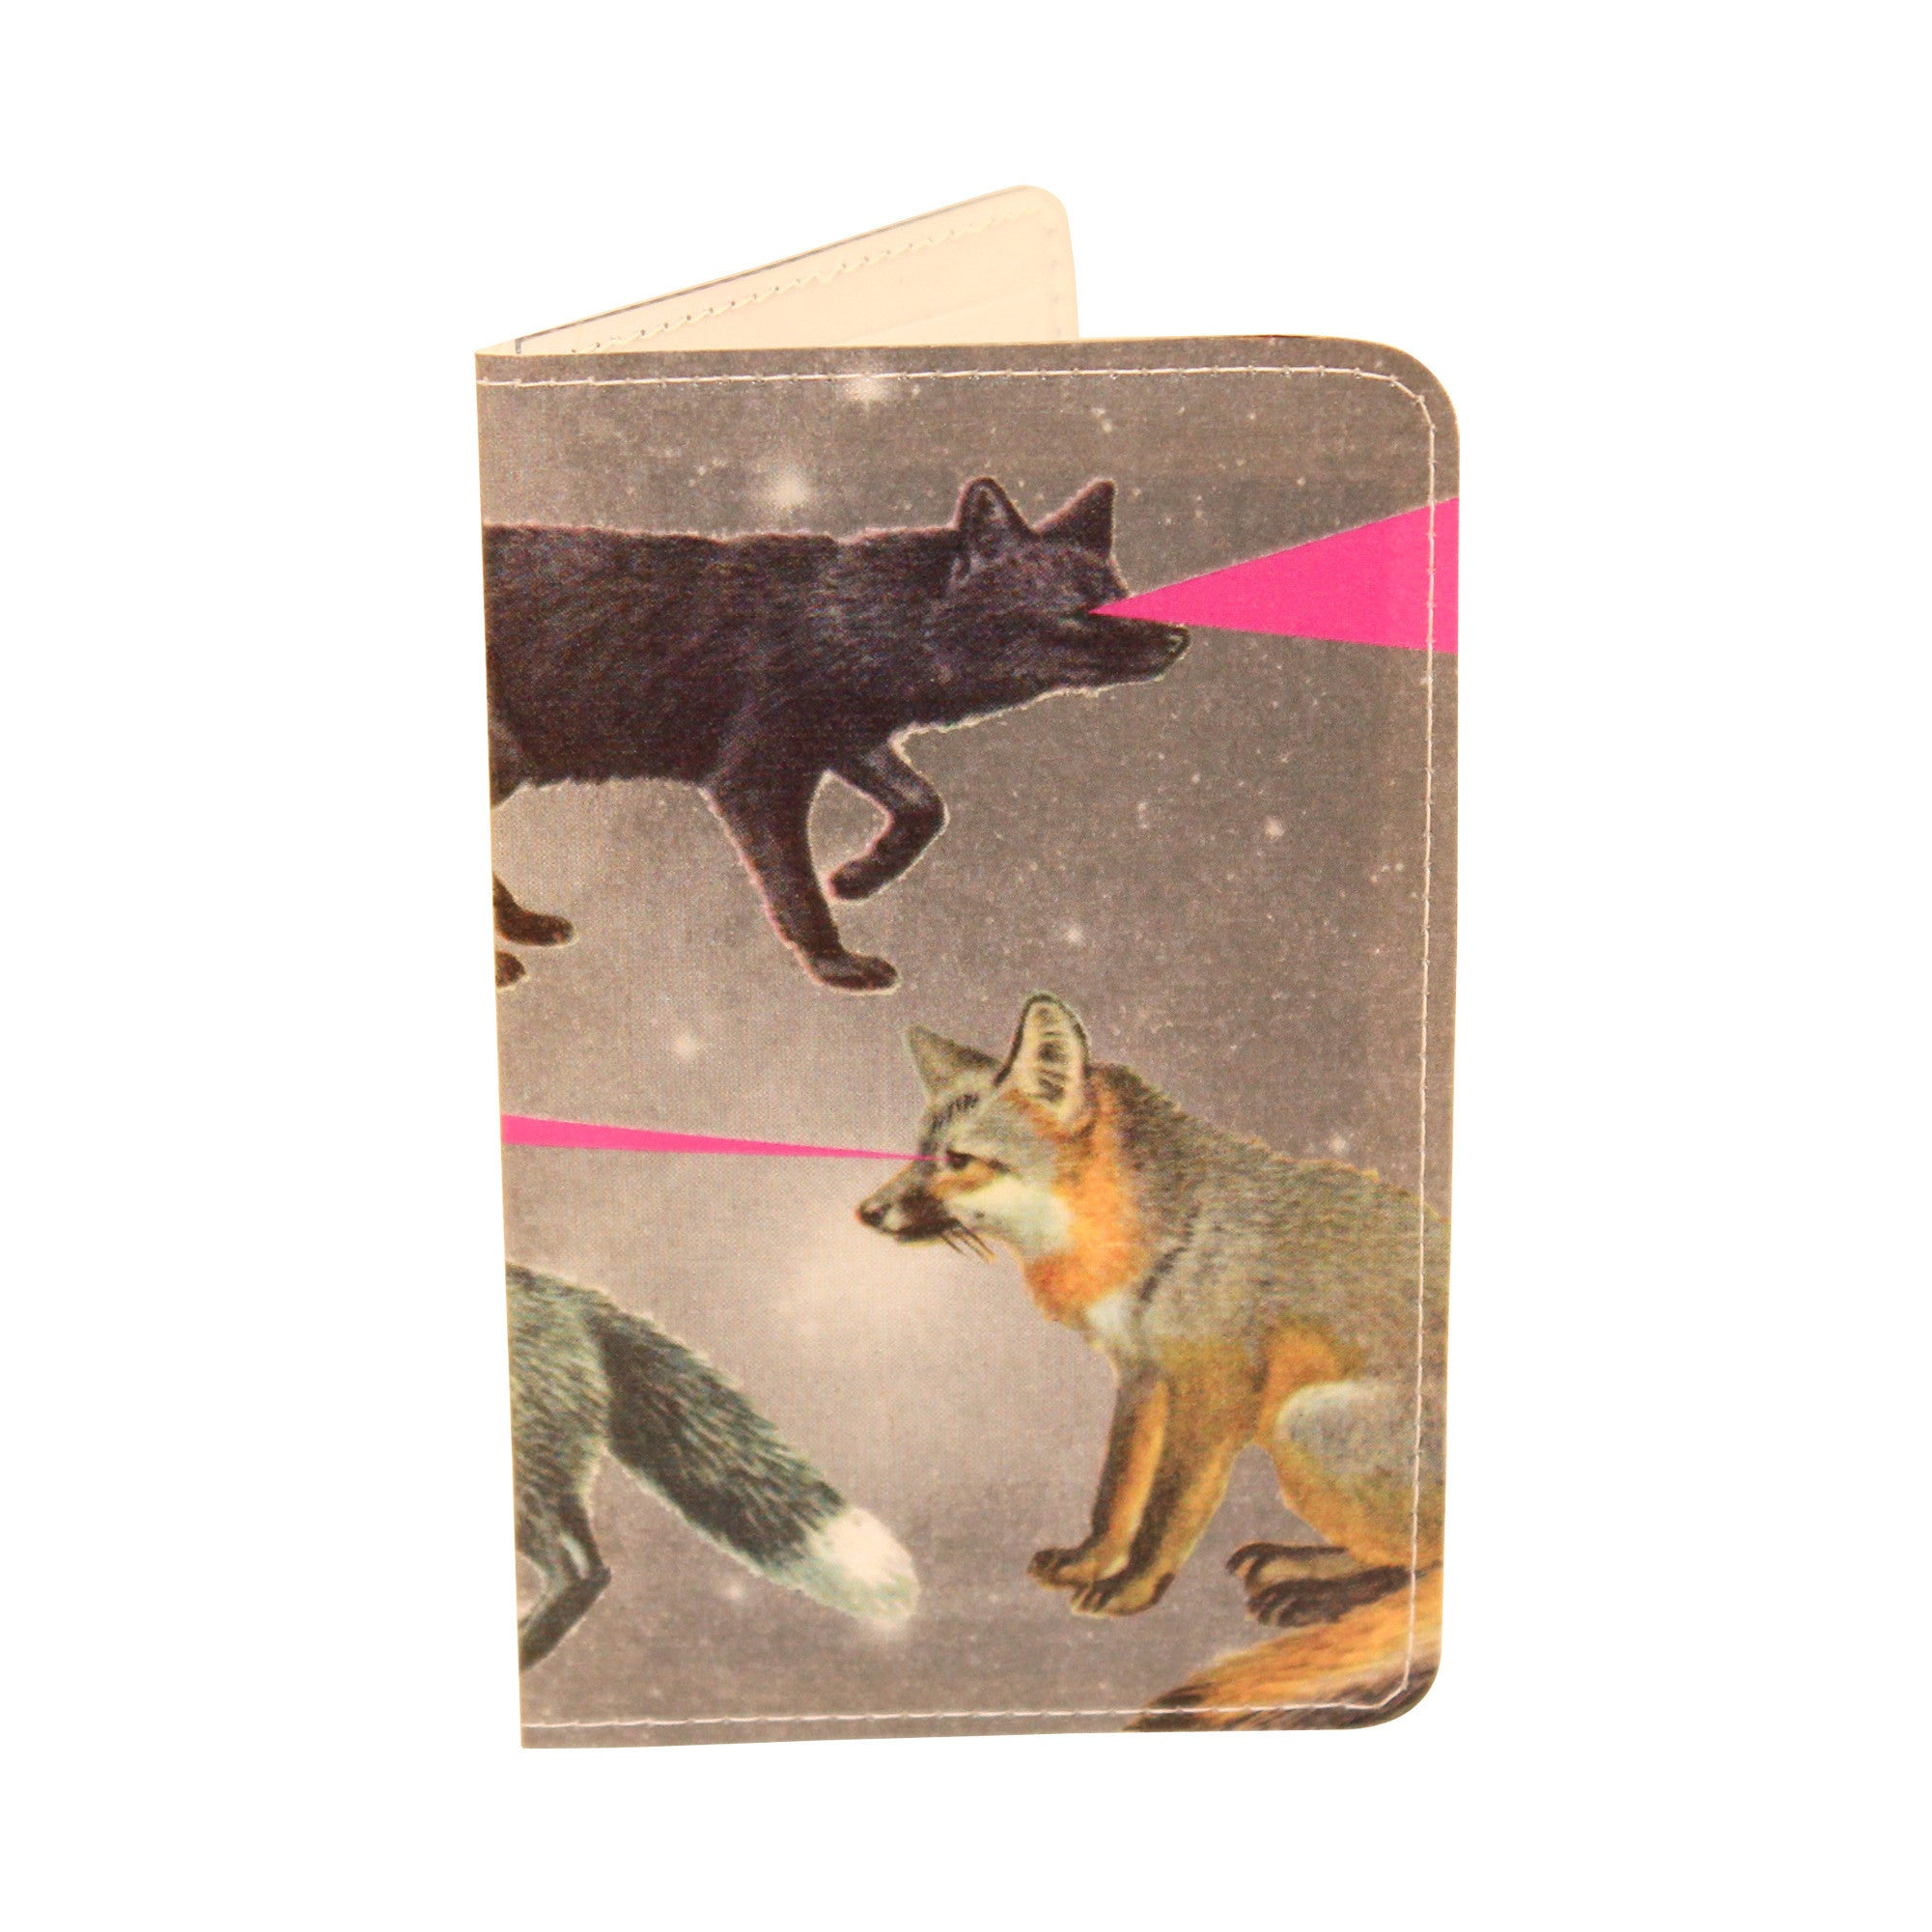 Foxy lasers business credit id card holder 1111 enterprises foxy lasers business credit id card holder reheart Choice Image